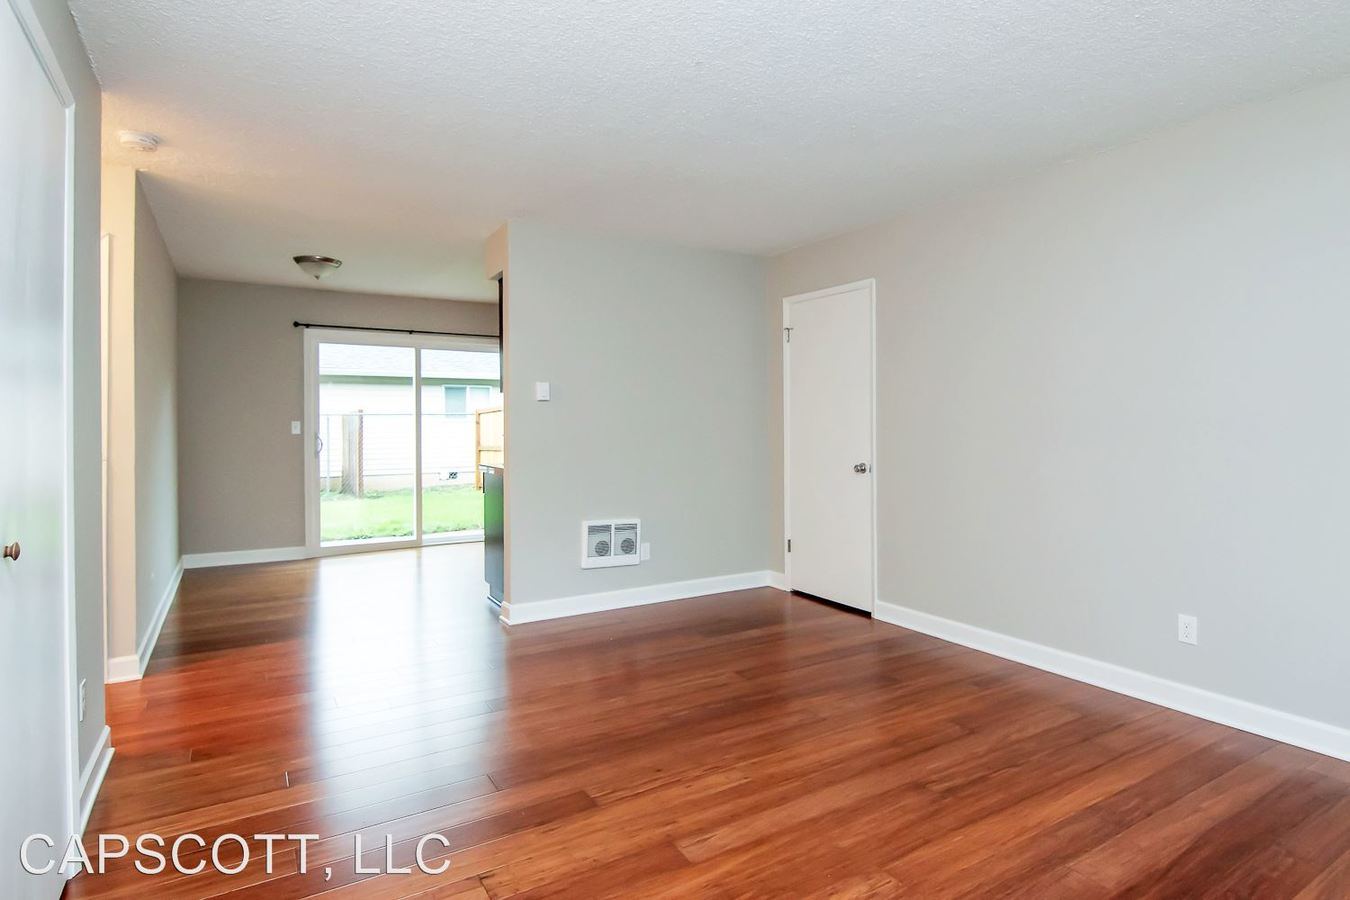 2 Bedrooms 1 Bathroom Apartment for rent at 12702 E. Burnside St. in Portland, OR